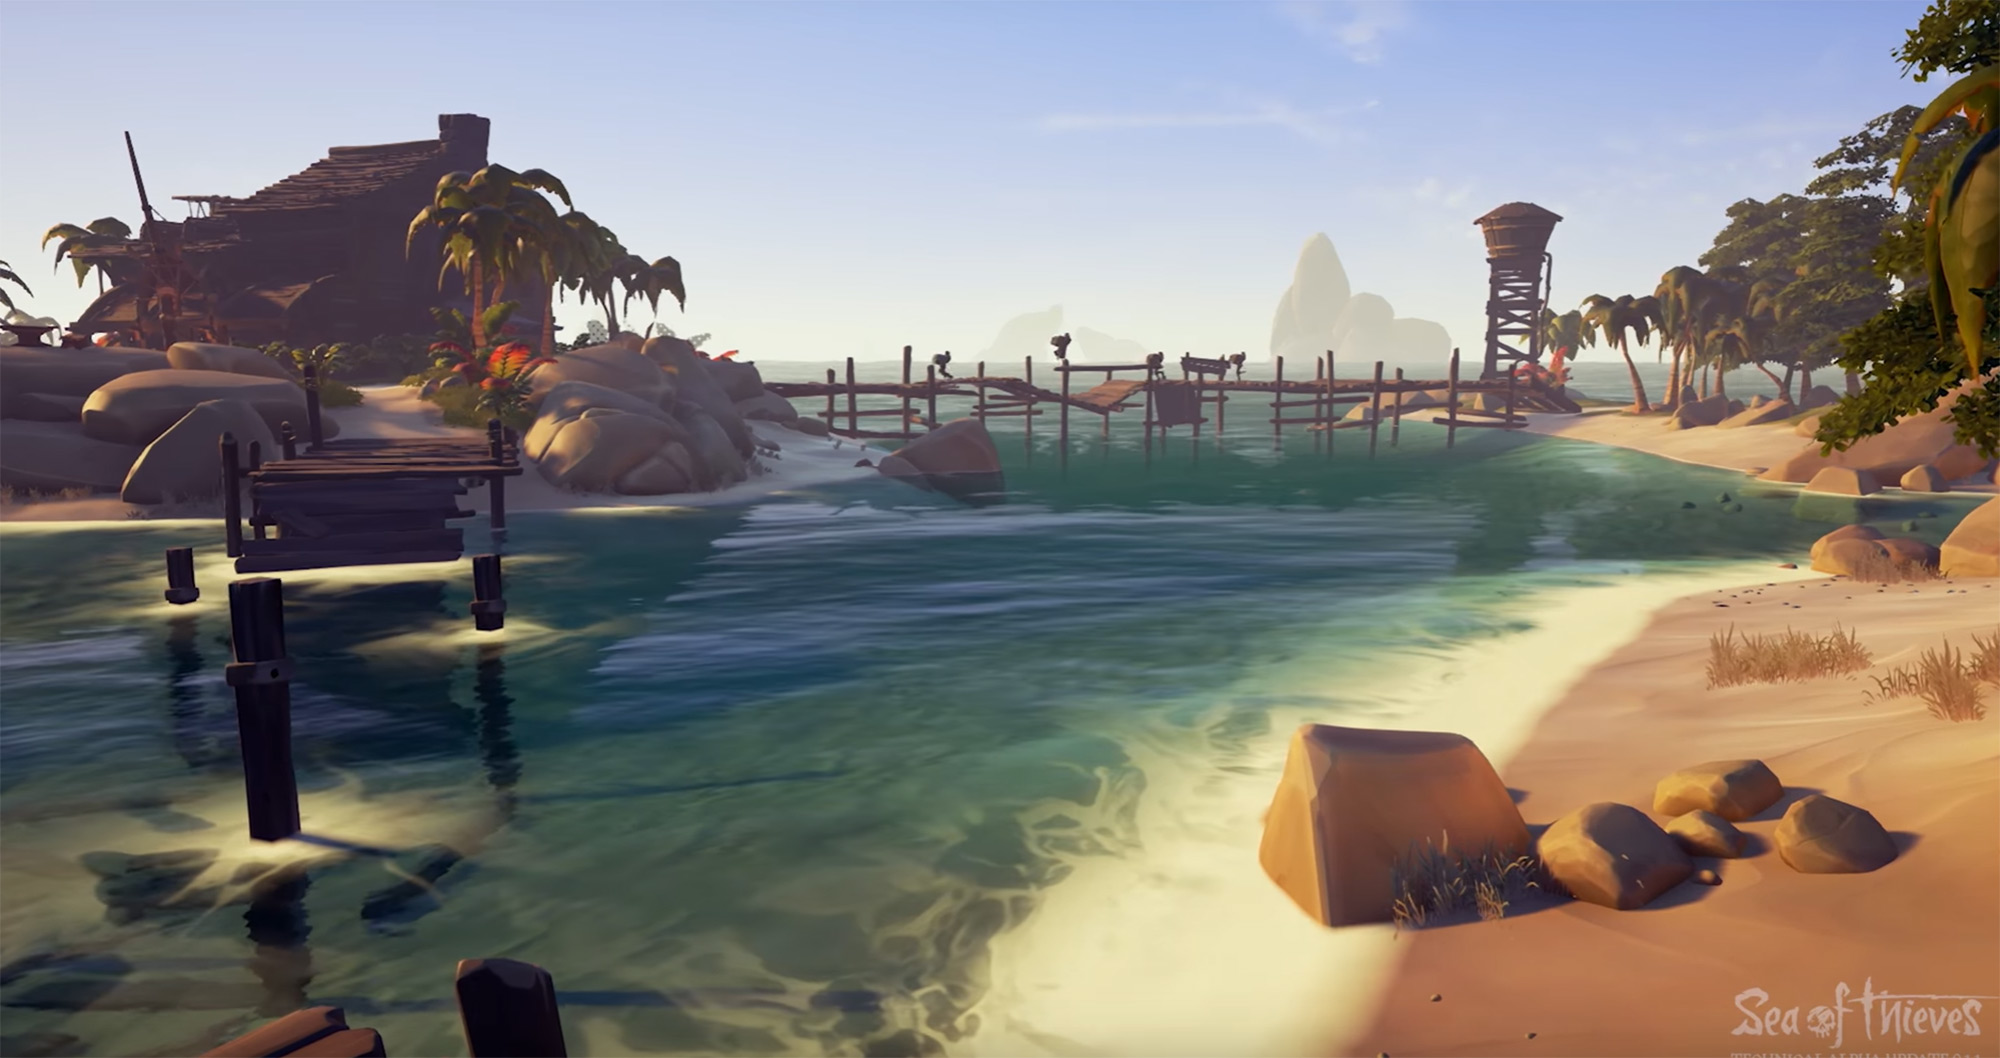 News Skeletons And New Islands Appear In Sea Of Thieves